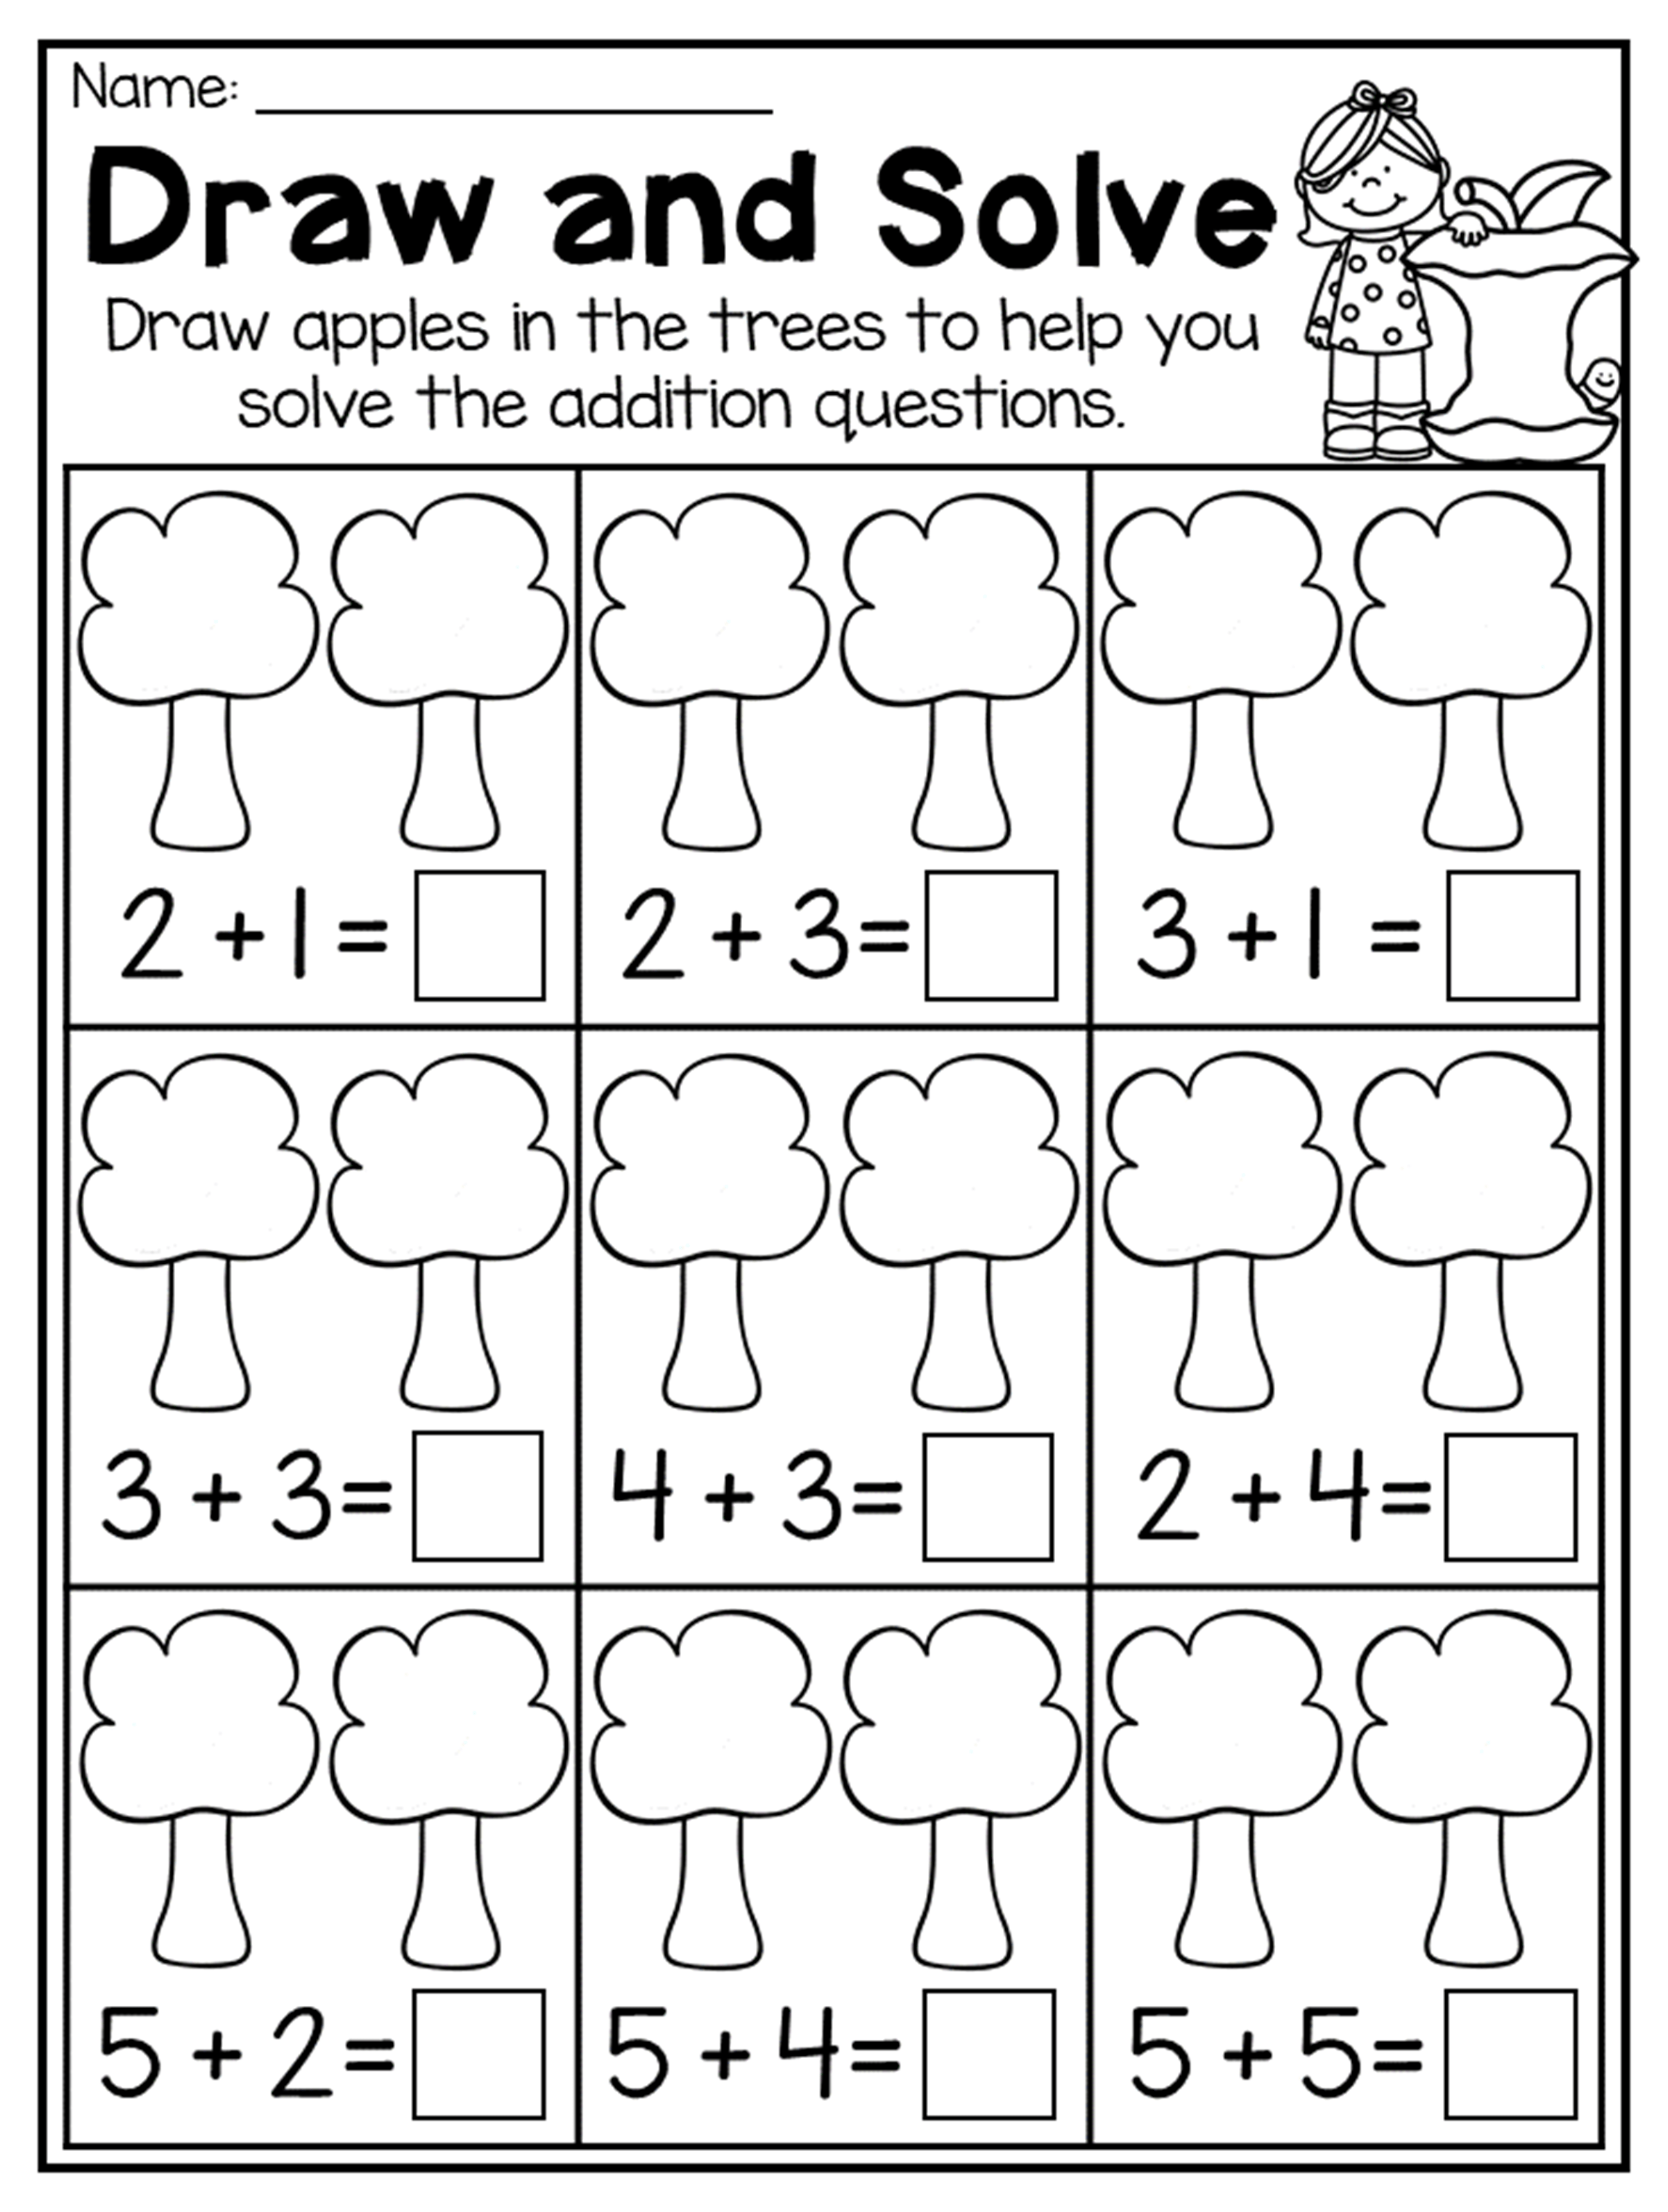 11 Best Autumn Math Worksheets For Kindergarten Images On